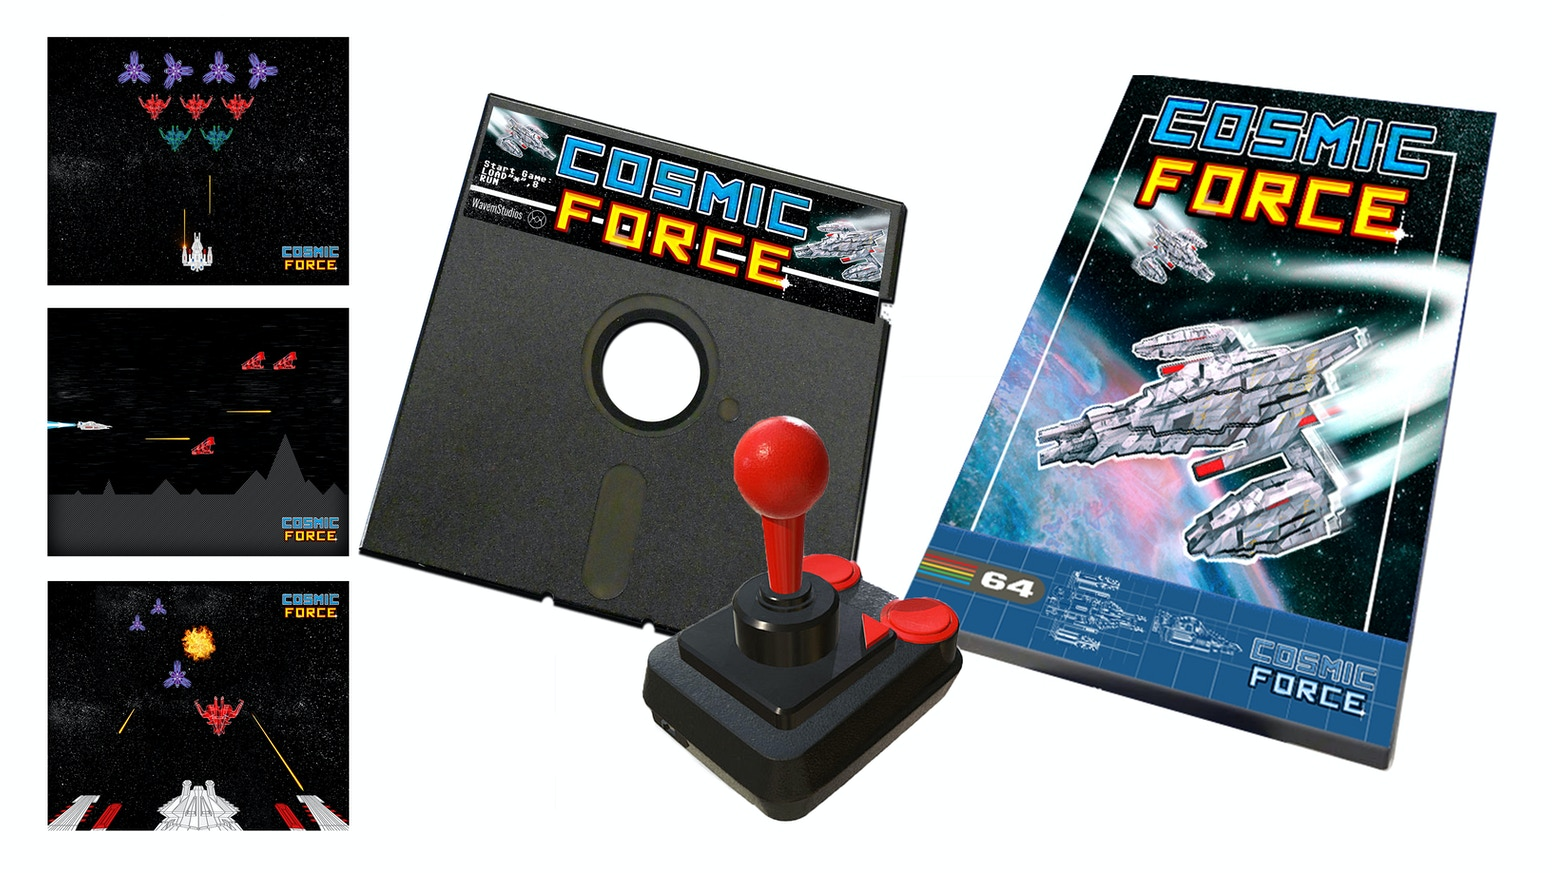 COSMIC FORCE - C64 Retro Shoot 'Em Up by WavemStudios — Kickstarter